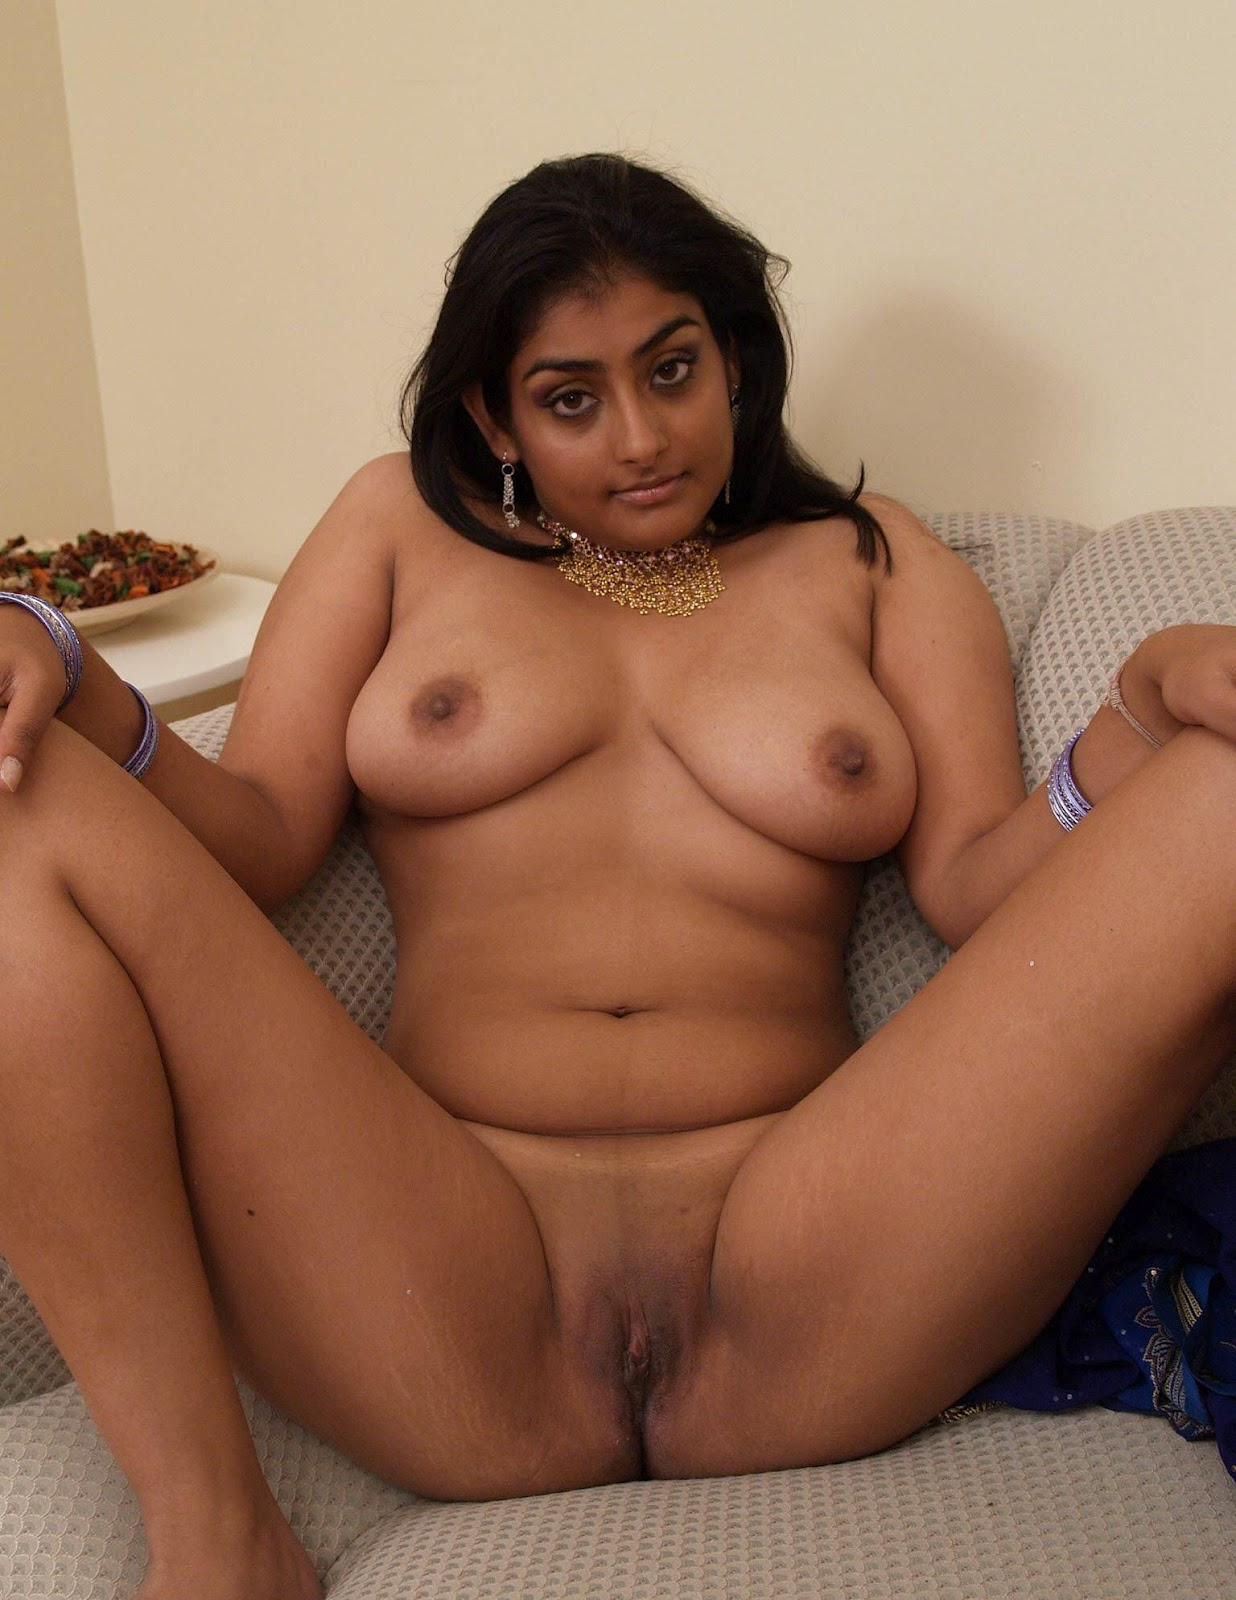 Hot Sey Indian Girls Nude